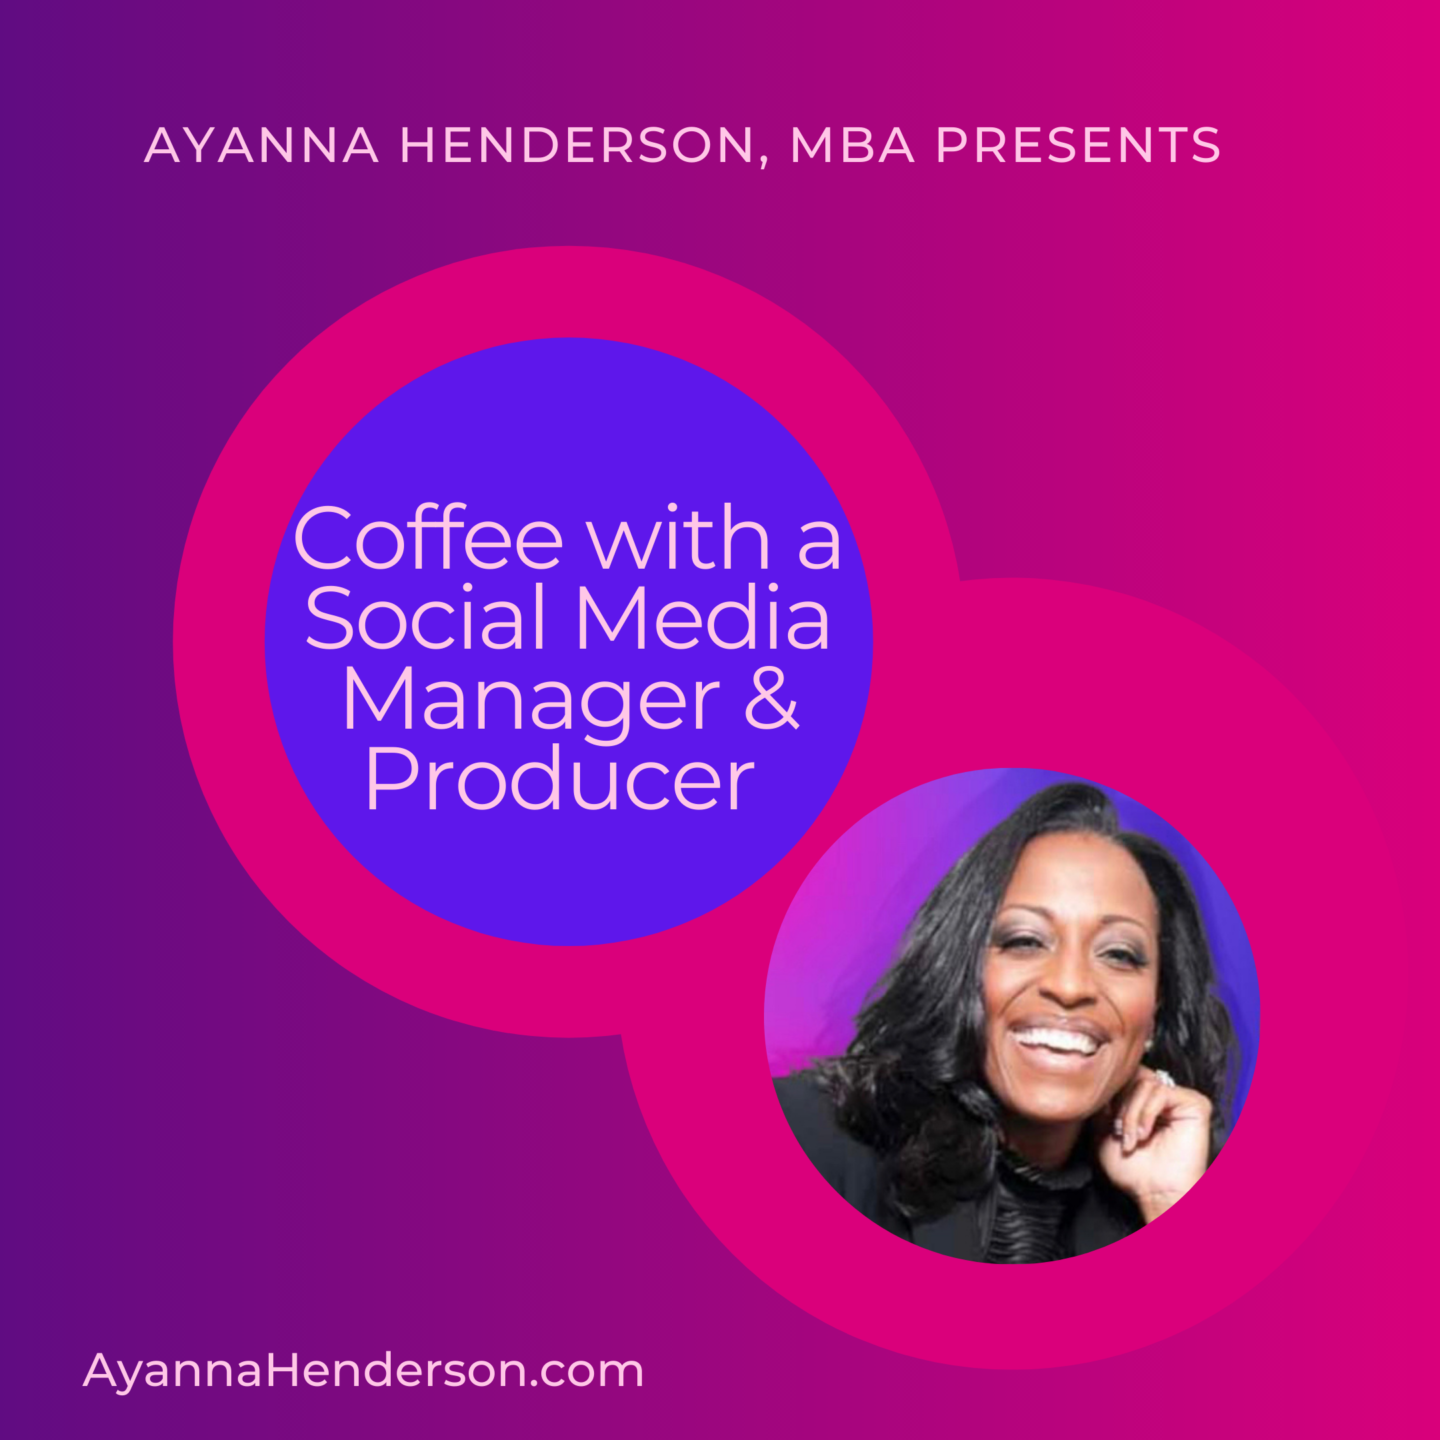 Coffee with a Social Media Manager & Producer